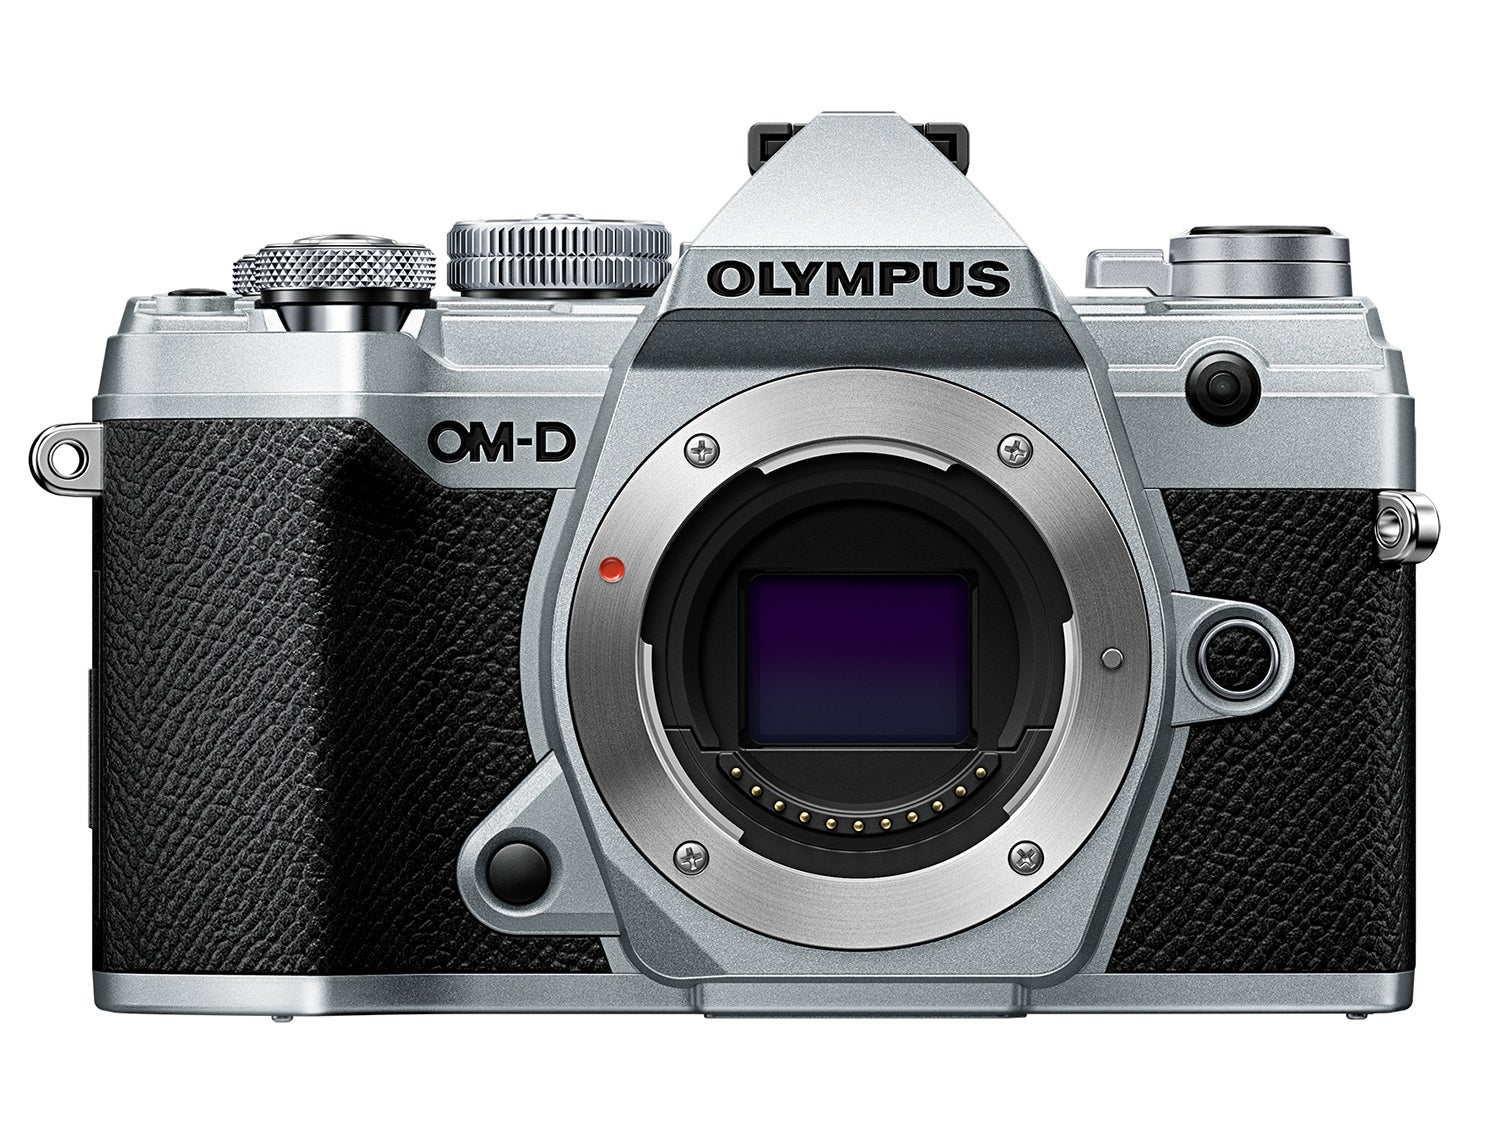 Meet the Olympus OM-D E-M5 Mark III